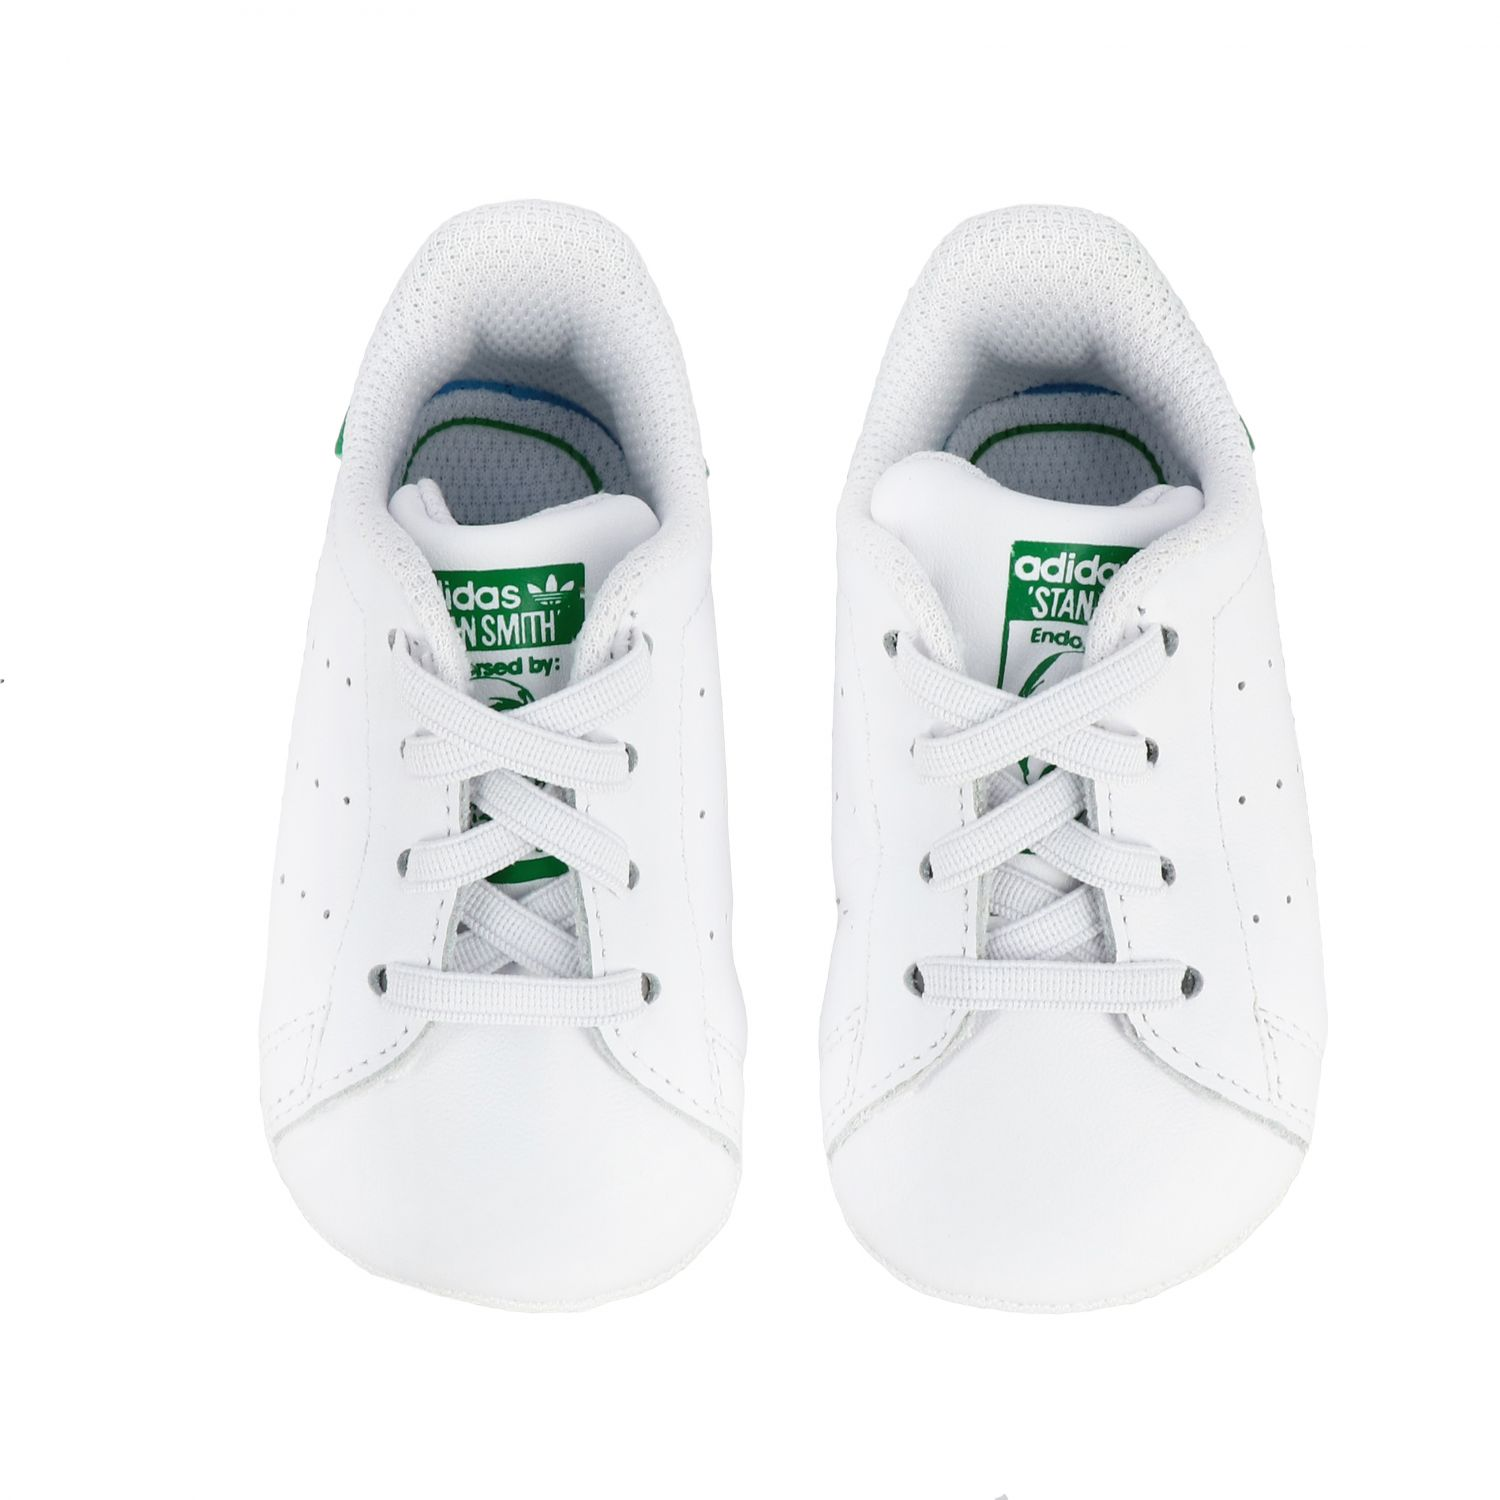 Shoes Adidas Originals: Stan smith Crib Adidas Originals leather sneakers white 3